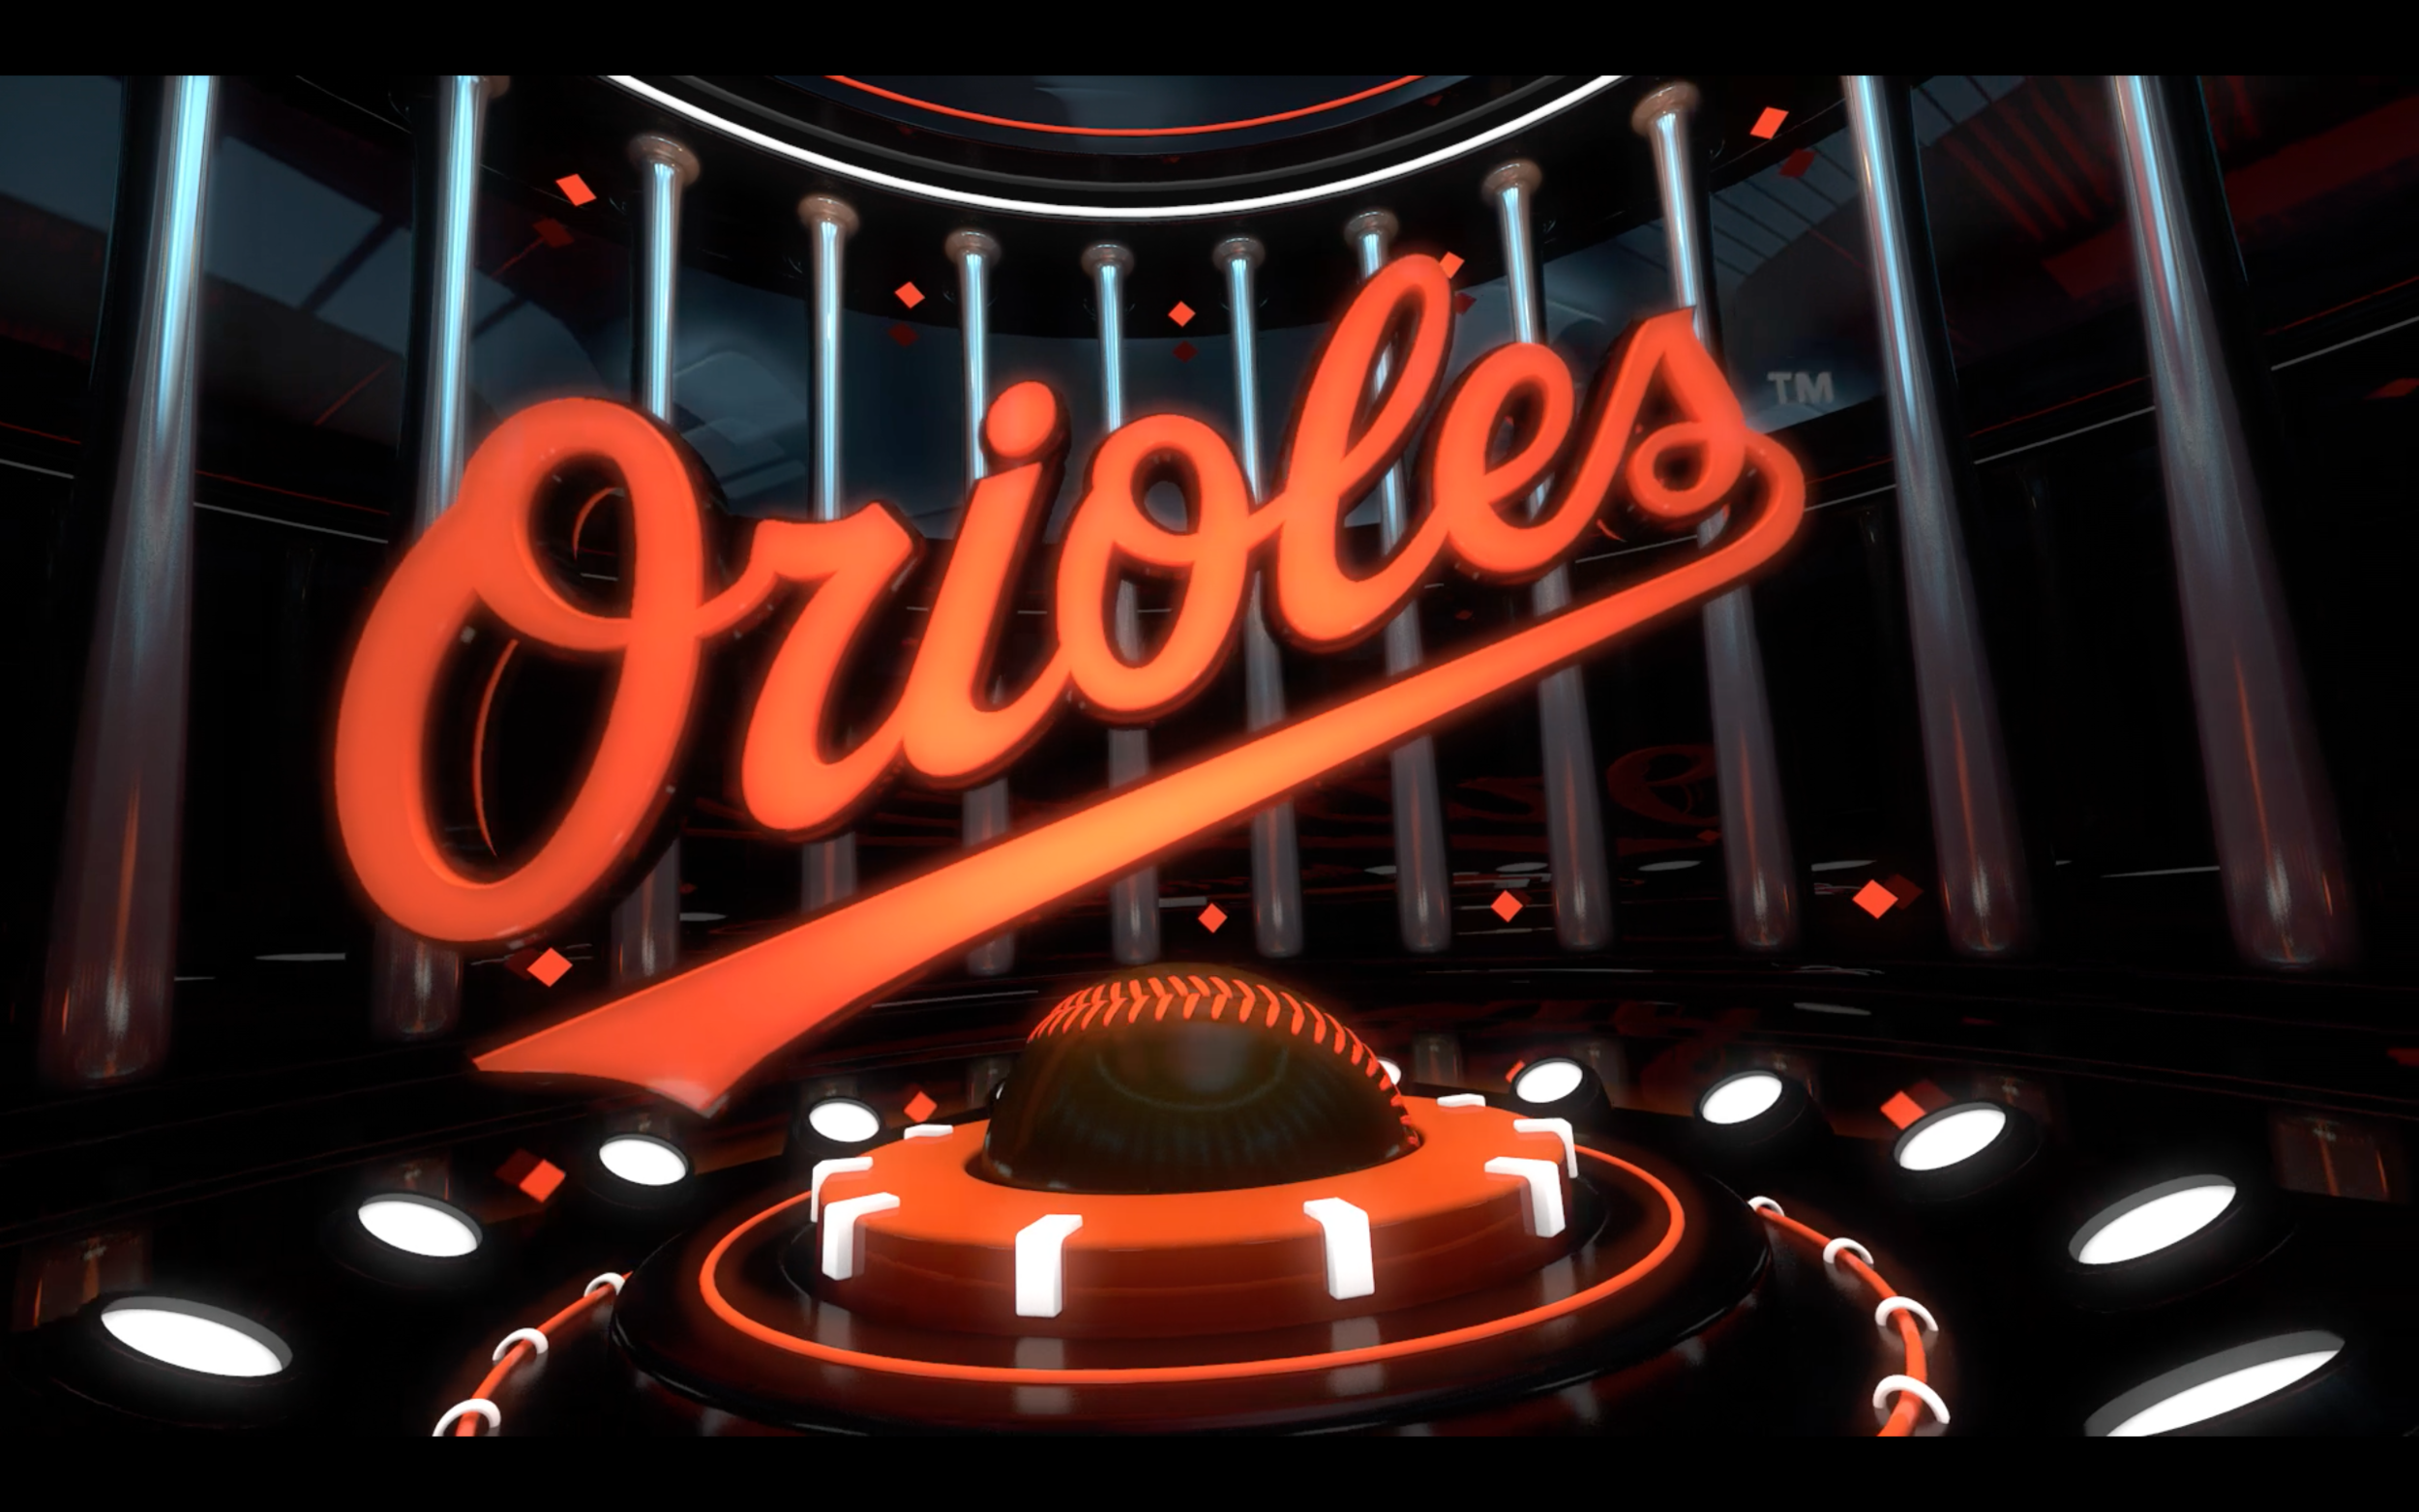 Screen Shot 2018-03-06 at 2.51.23 PM copy.png